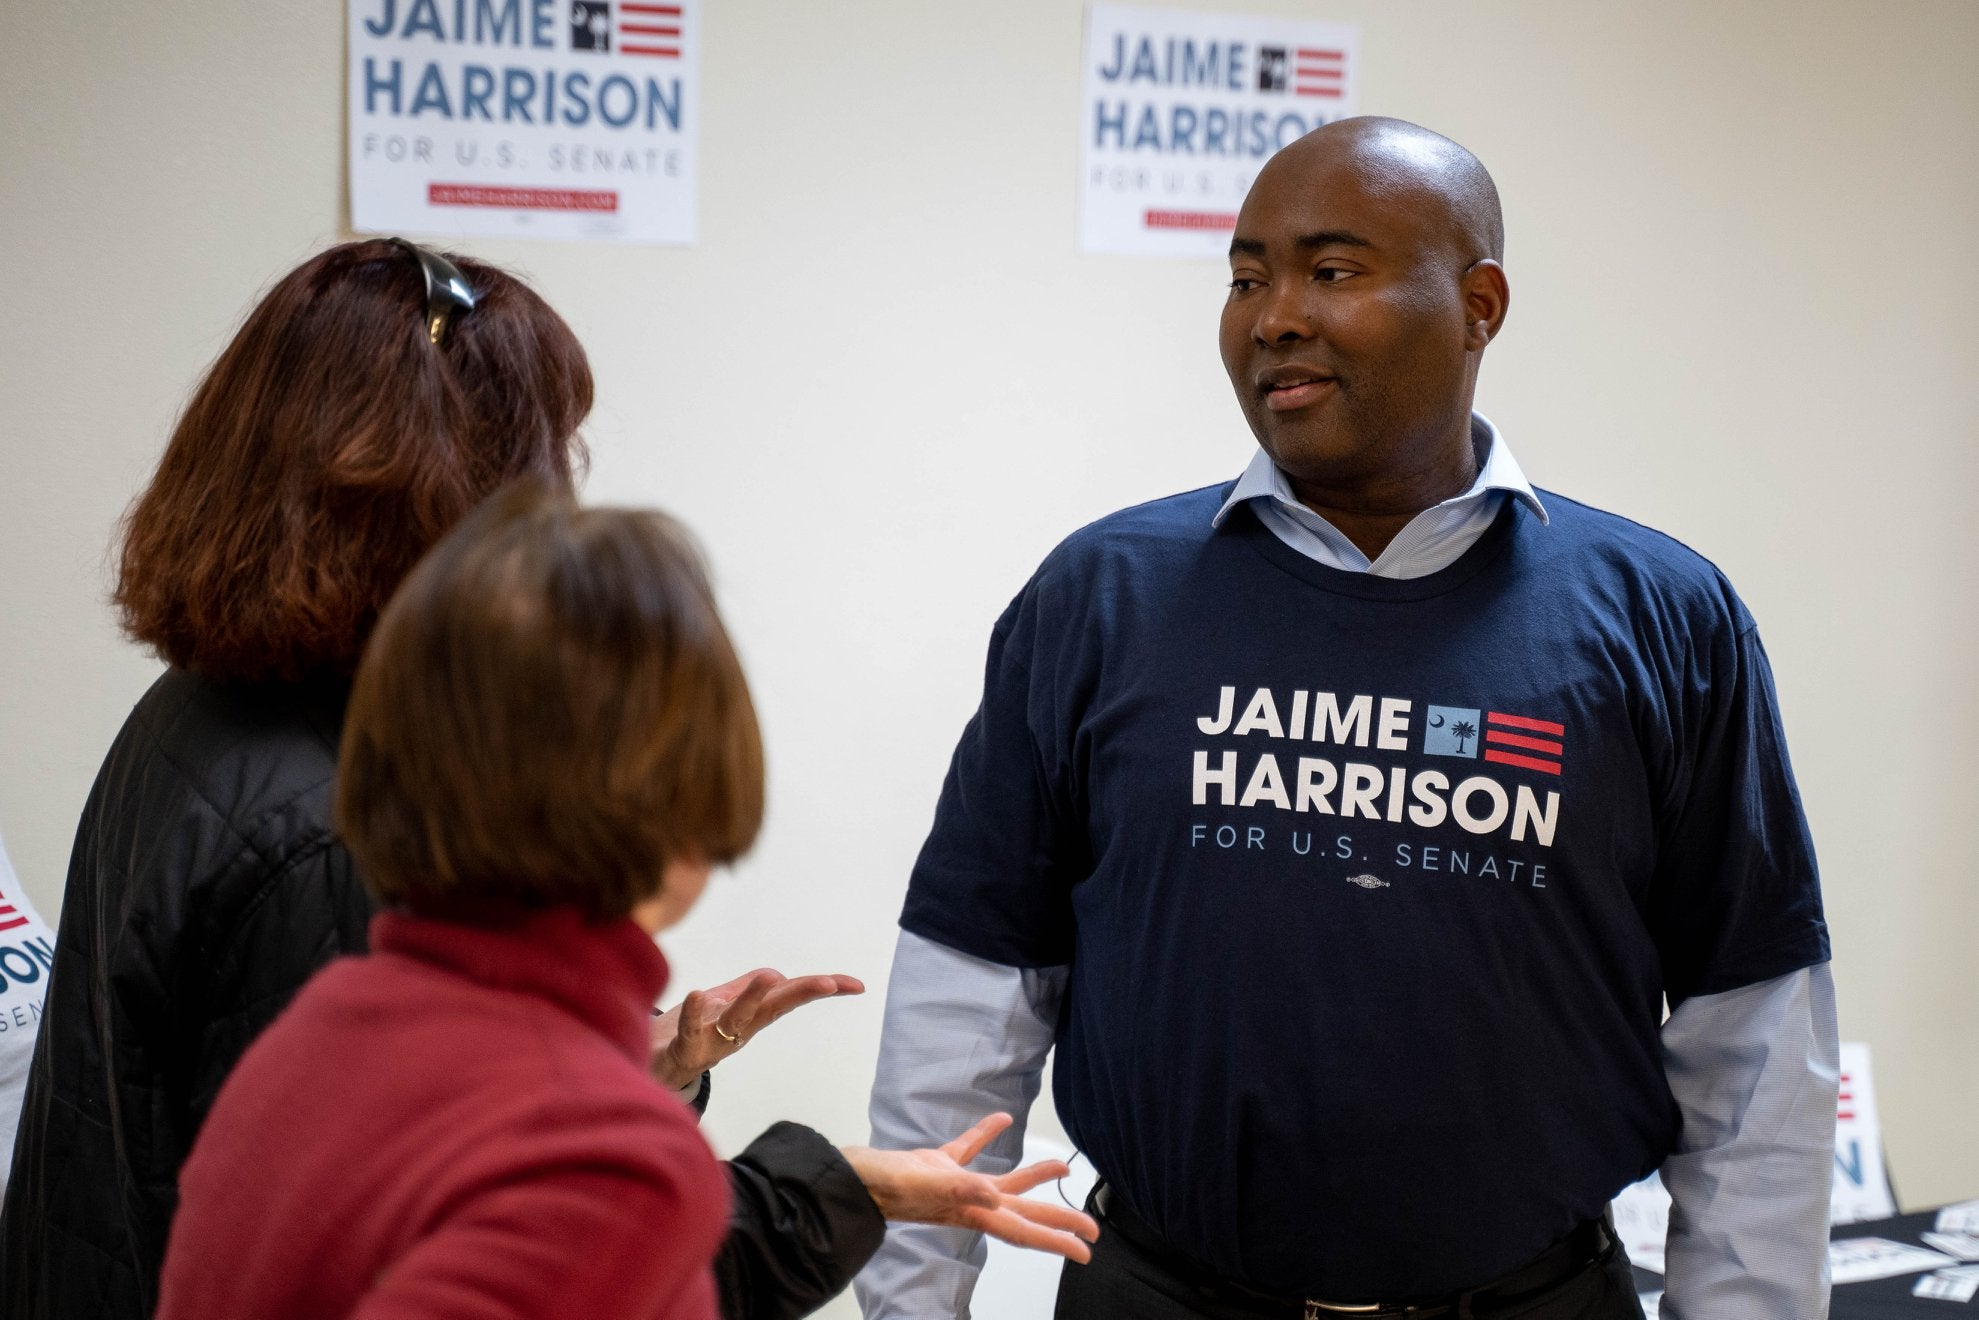 Jaime Harrison wears an election t-shirt with his name